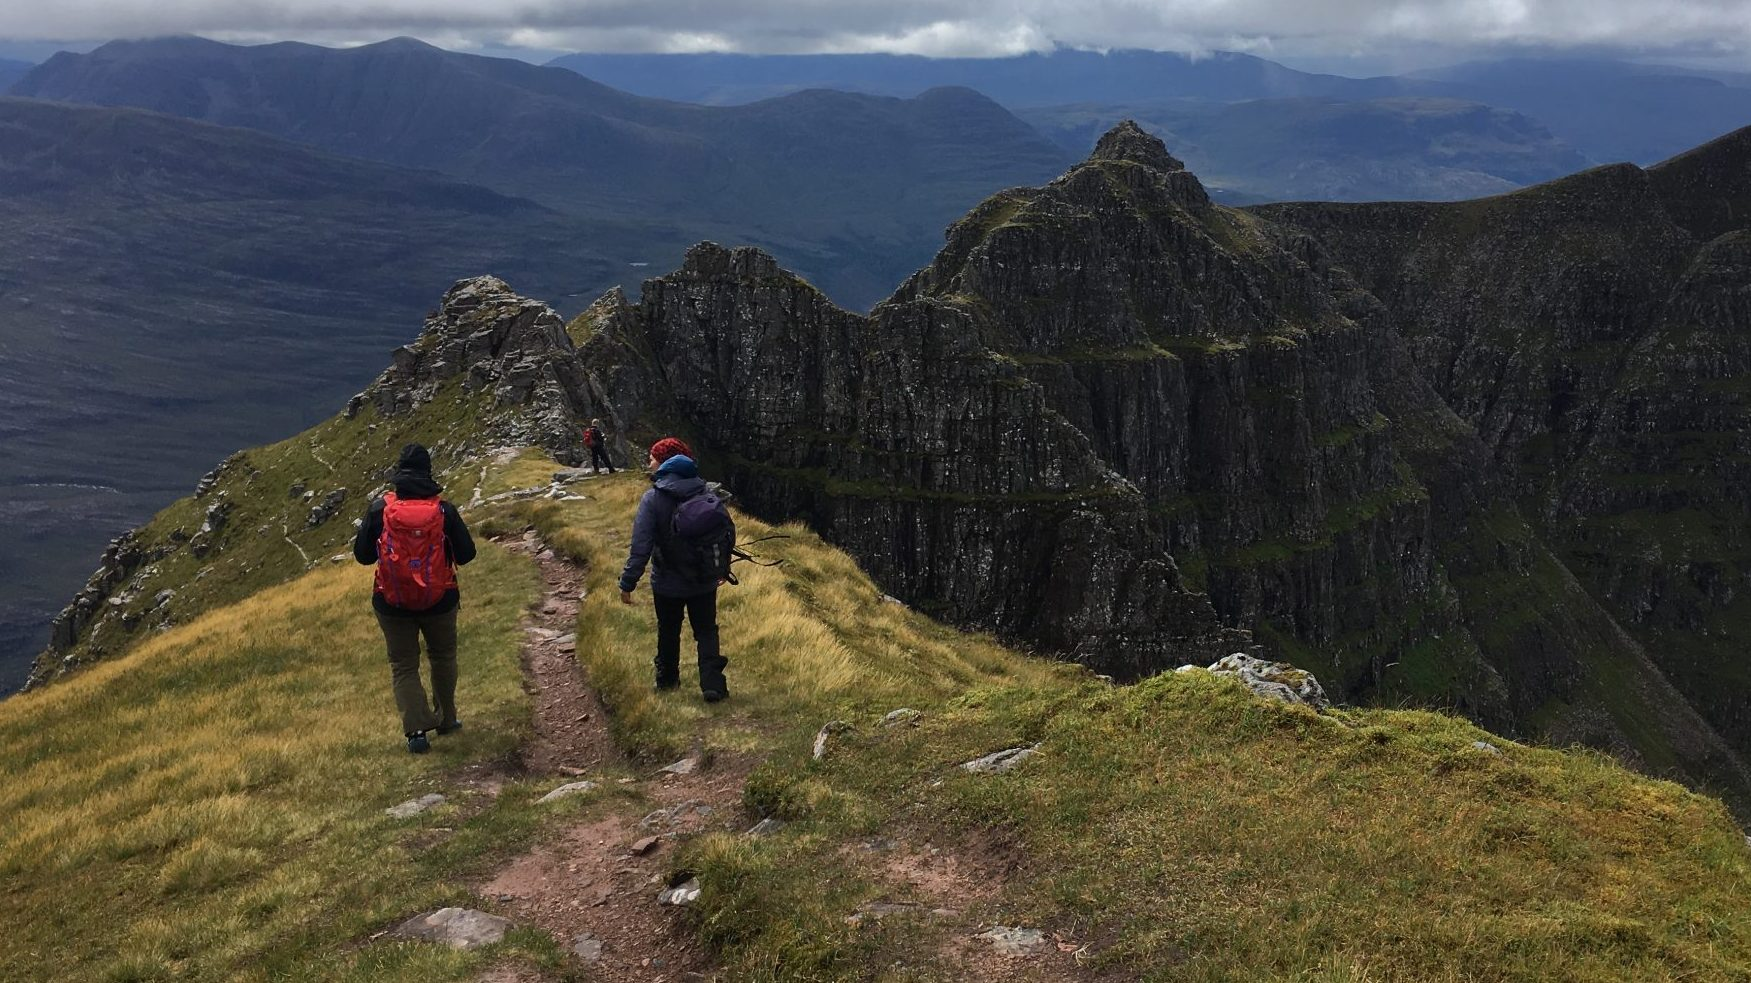 Two mountaineers approaching the narrow rocky ridge of Liathach on a summer mountaineering course